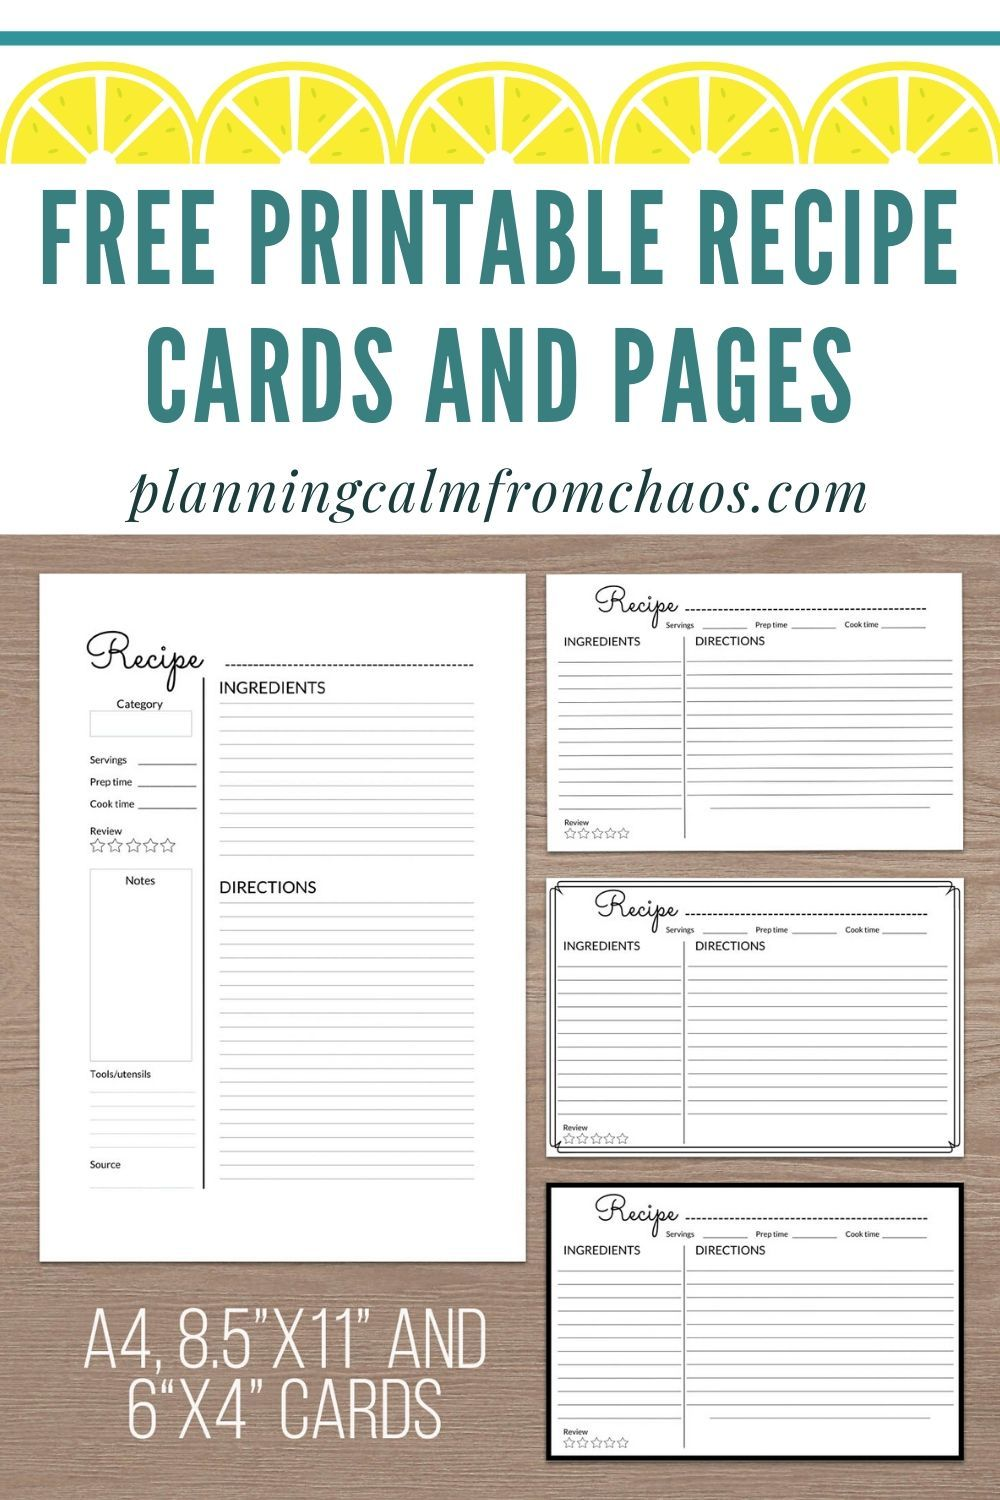 Free Printable Recipe Cards And Pages Recipe Cards Printable Free Food Printables Printable Recipe Cards